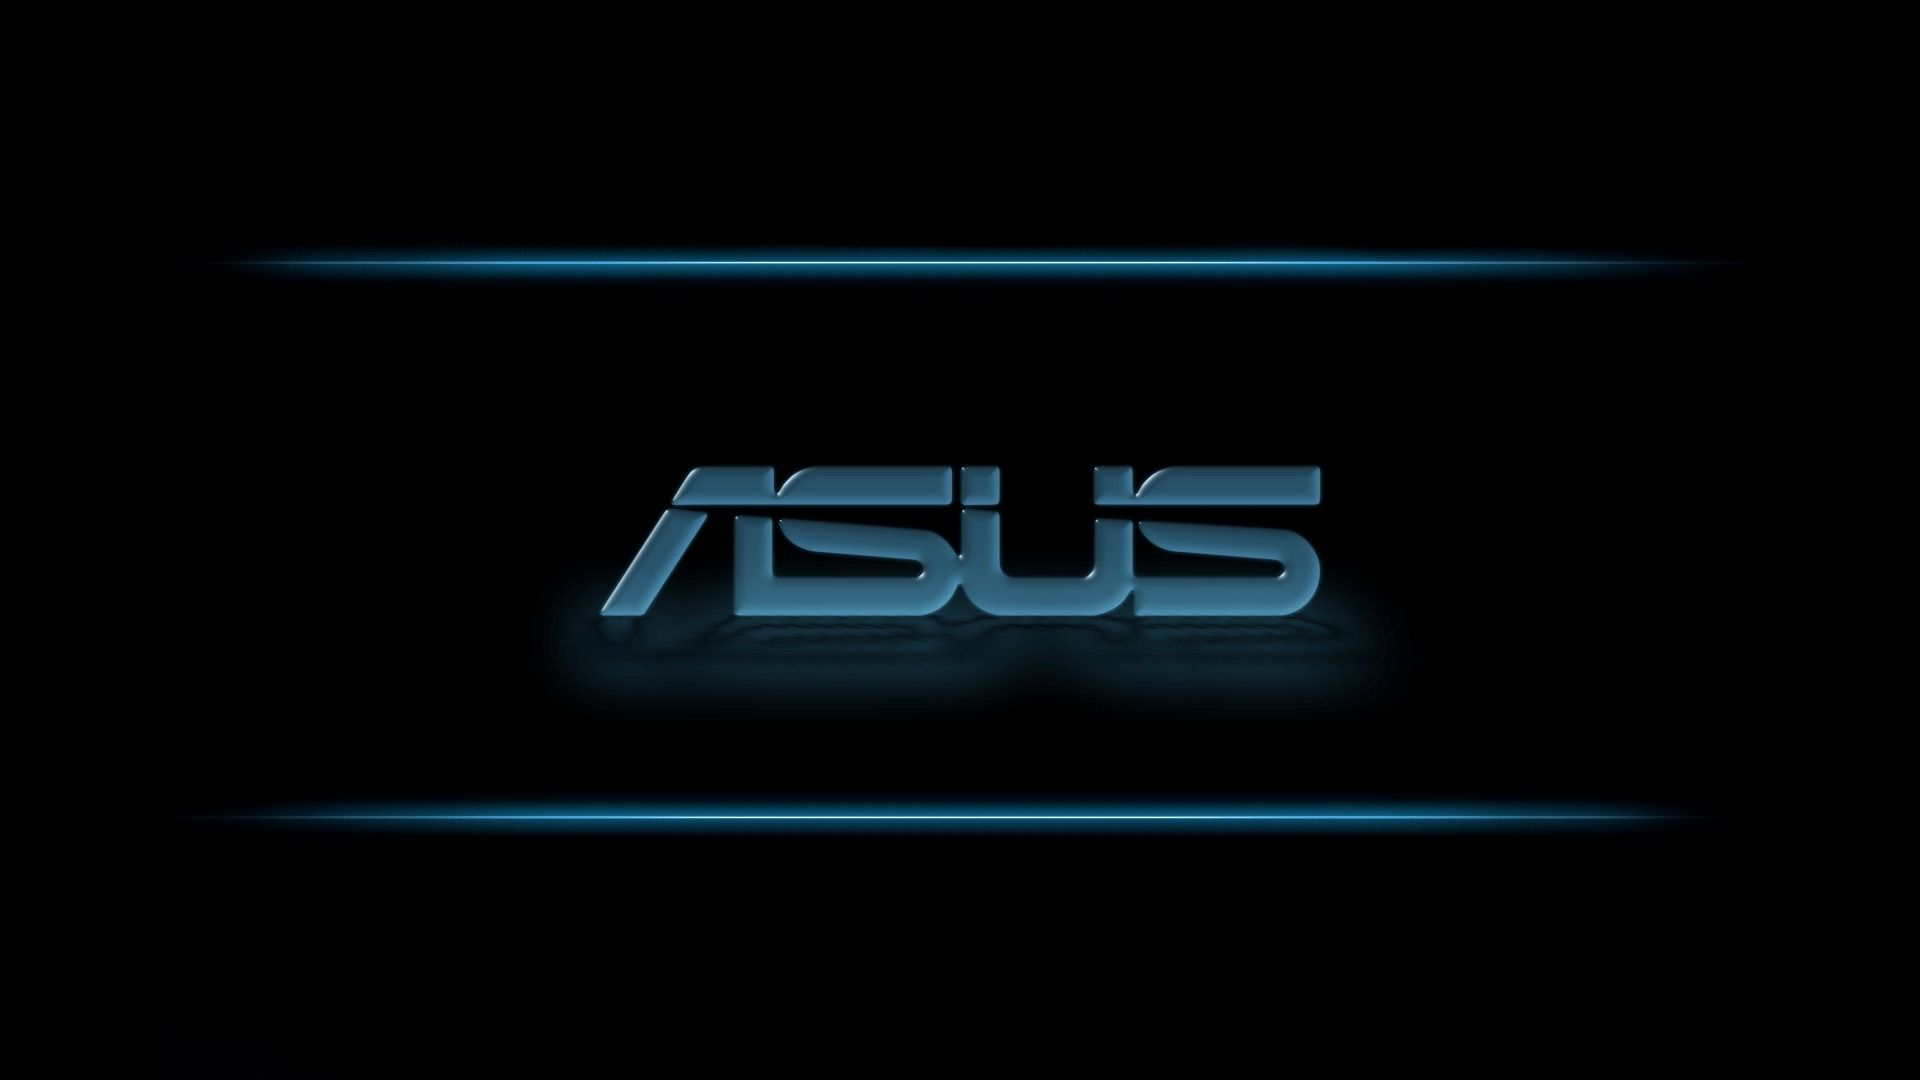 Download 5000+ Wallpaper Asus Blue